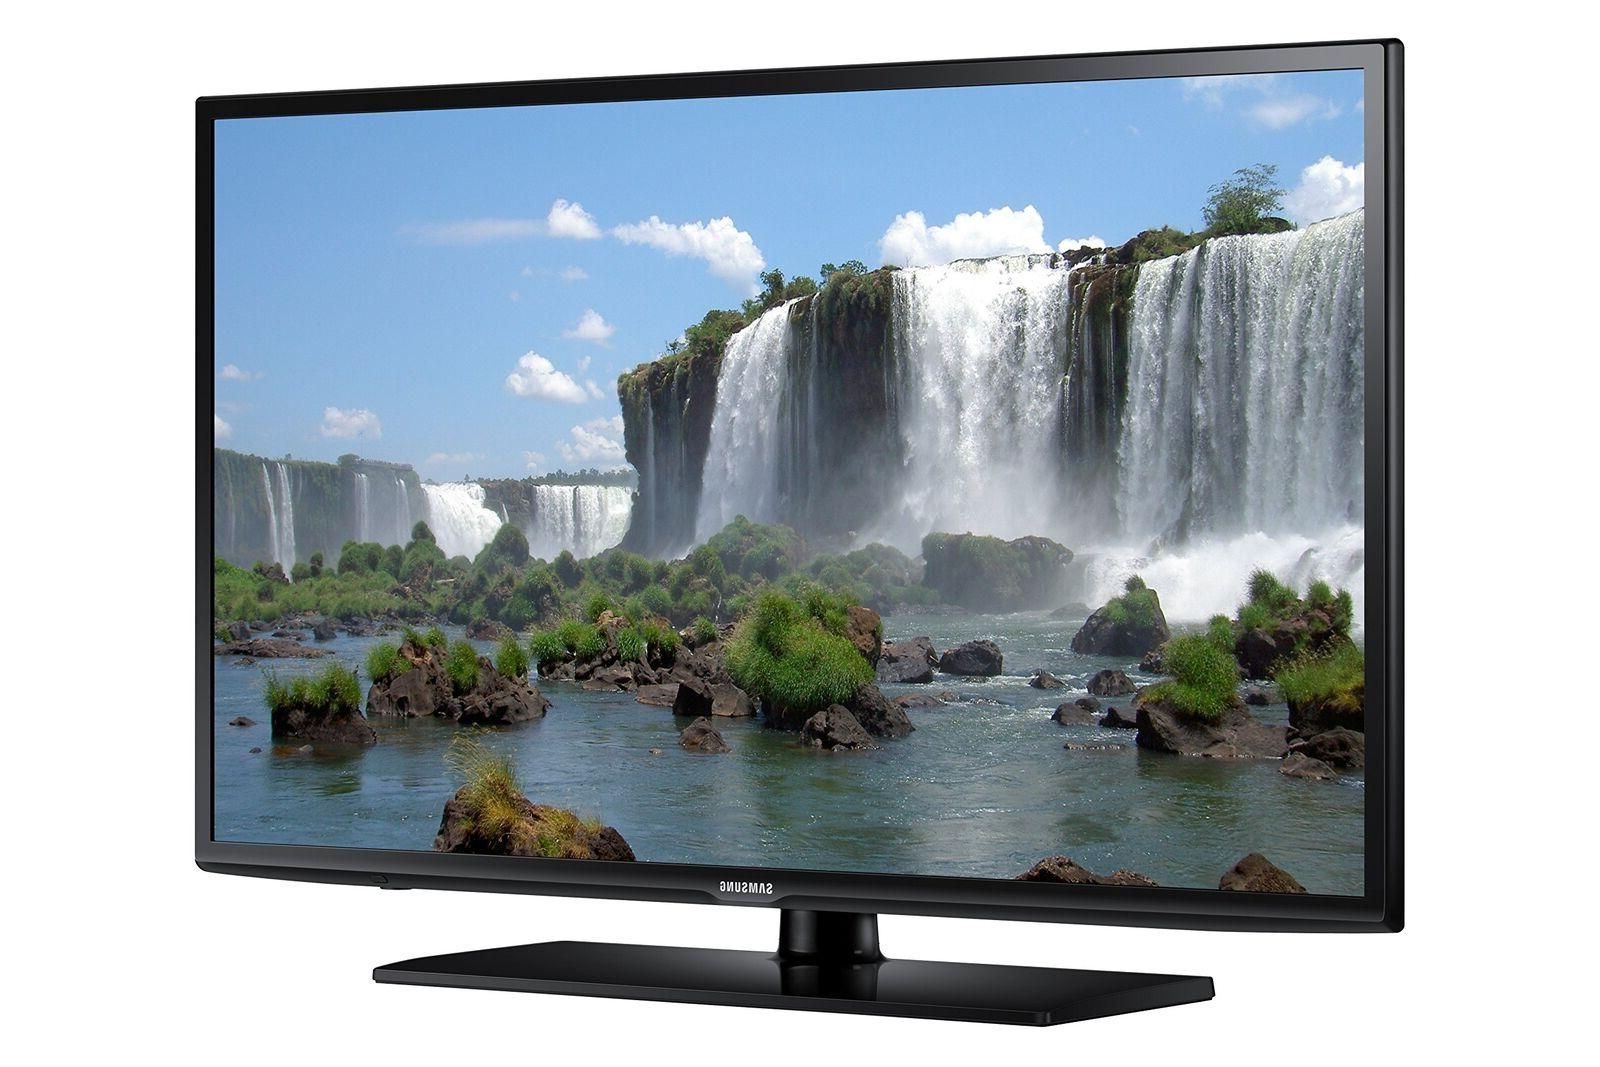 Samsung UN60J6200 1080p Smart LED TV